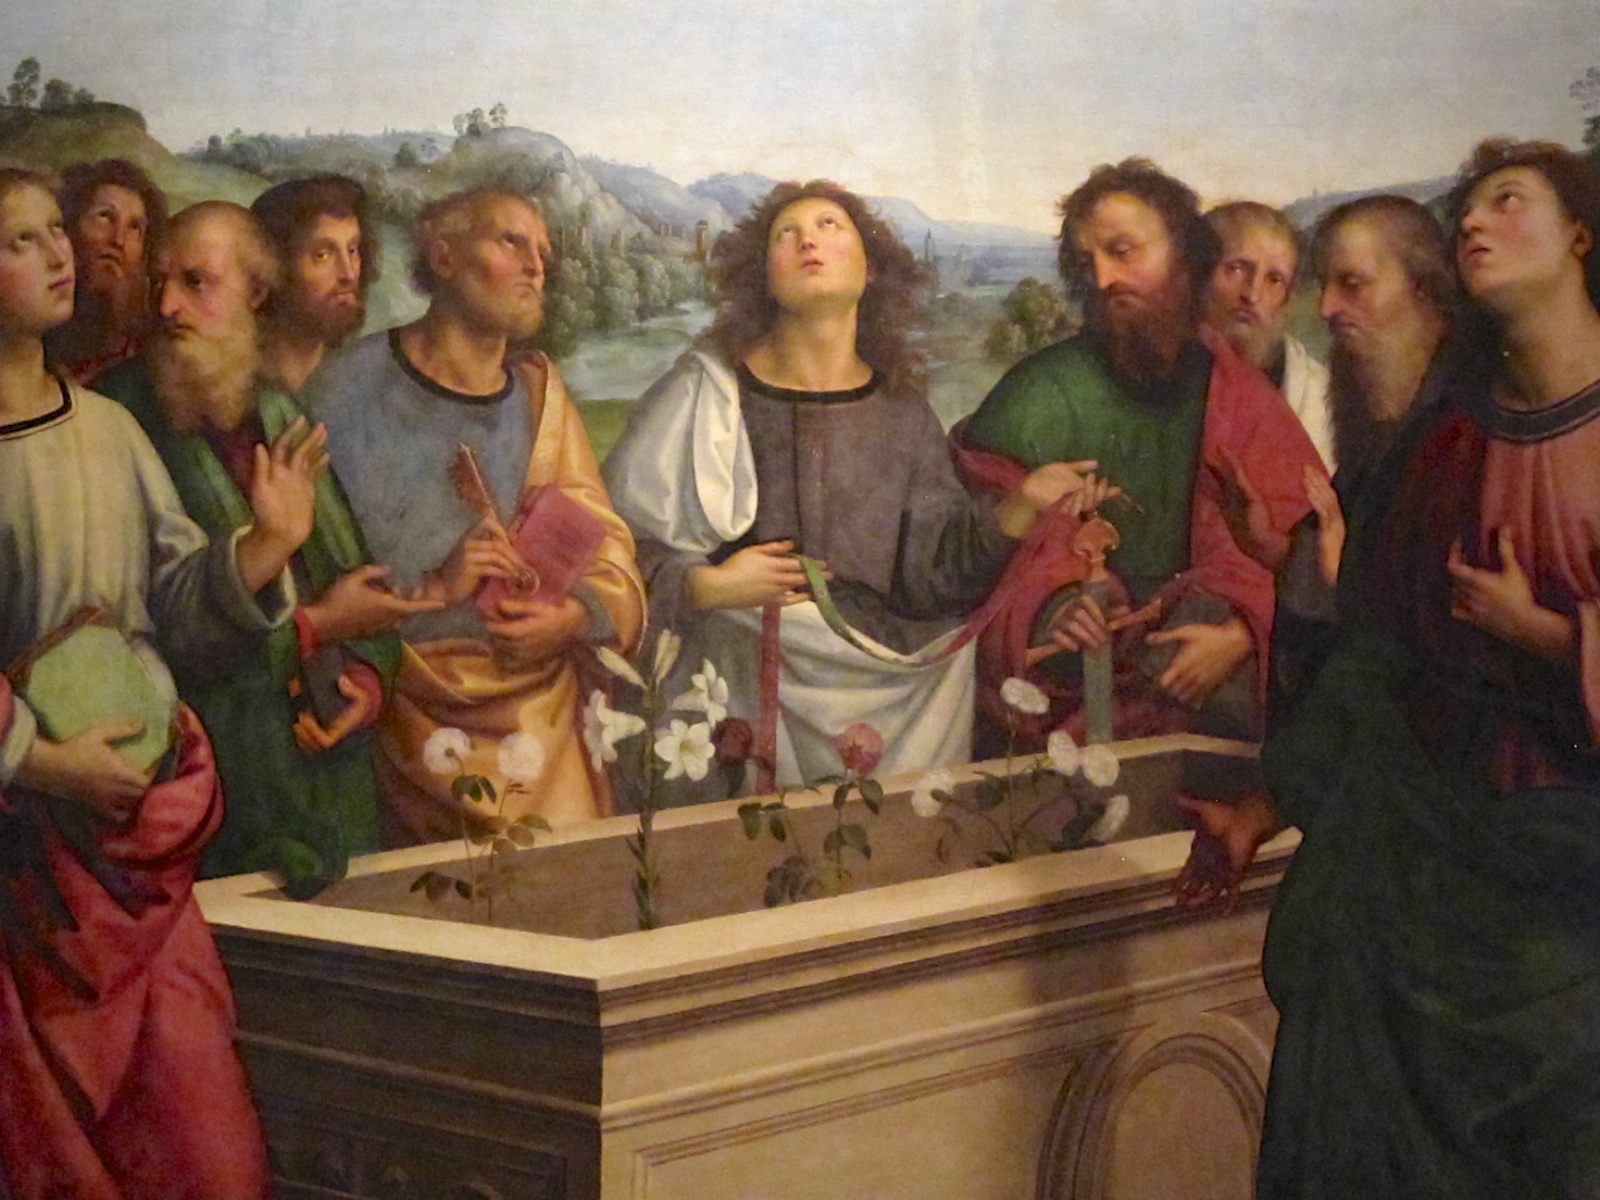 Detail of Raphael's Crowning of the Virgin painting, in the Vatican museums